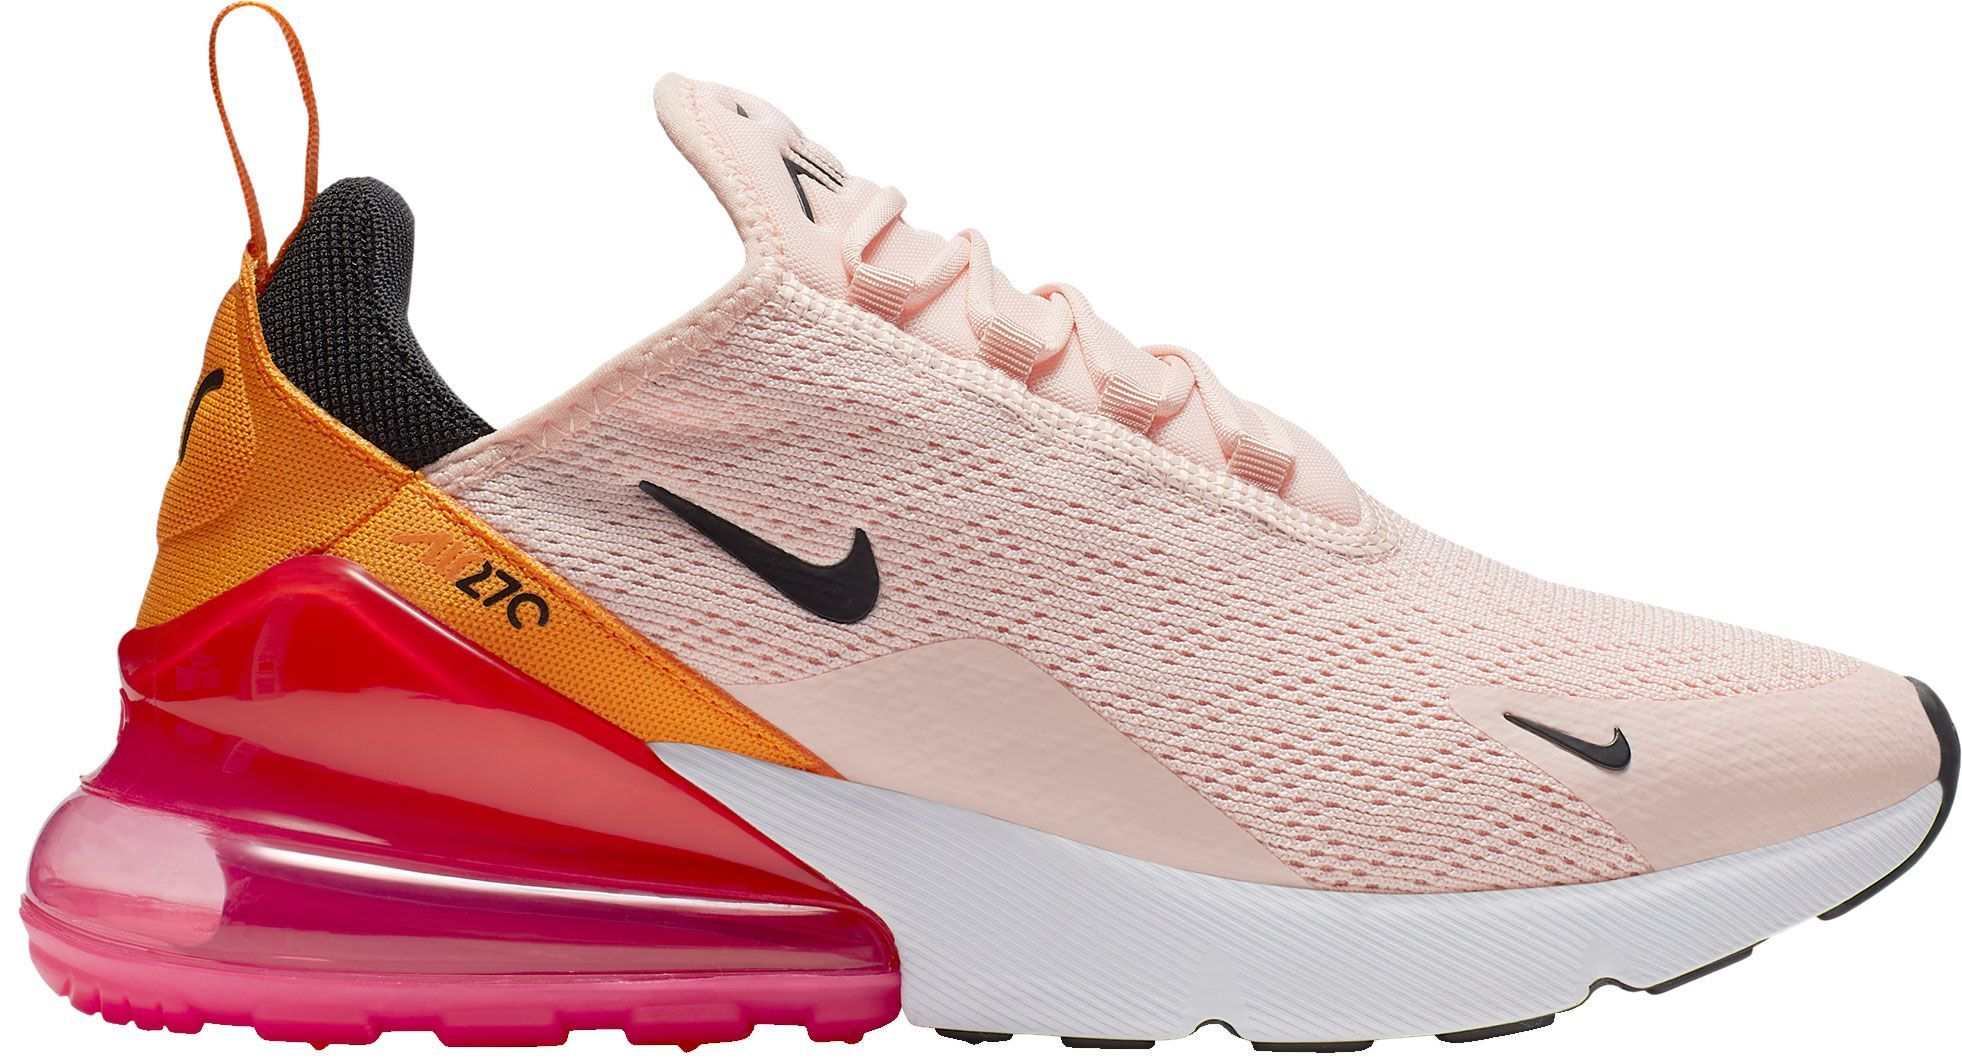 brand new d7592 e1504 Nike Women's Air Max 270 Shoes in 2019 | Products | Air max ...